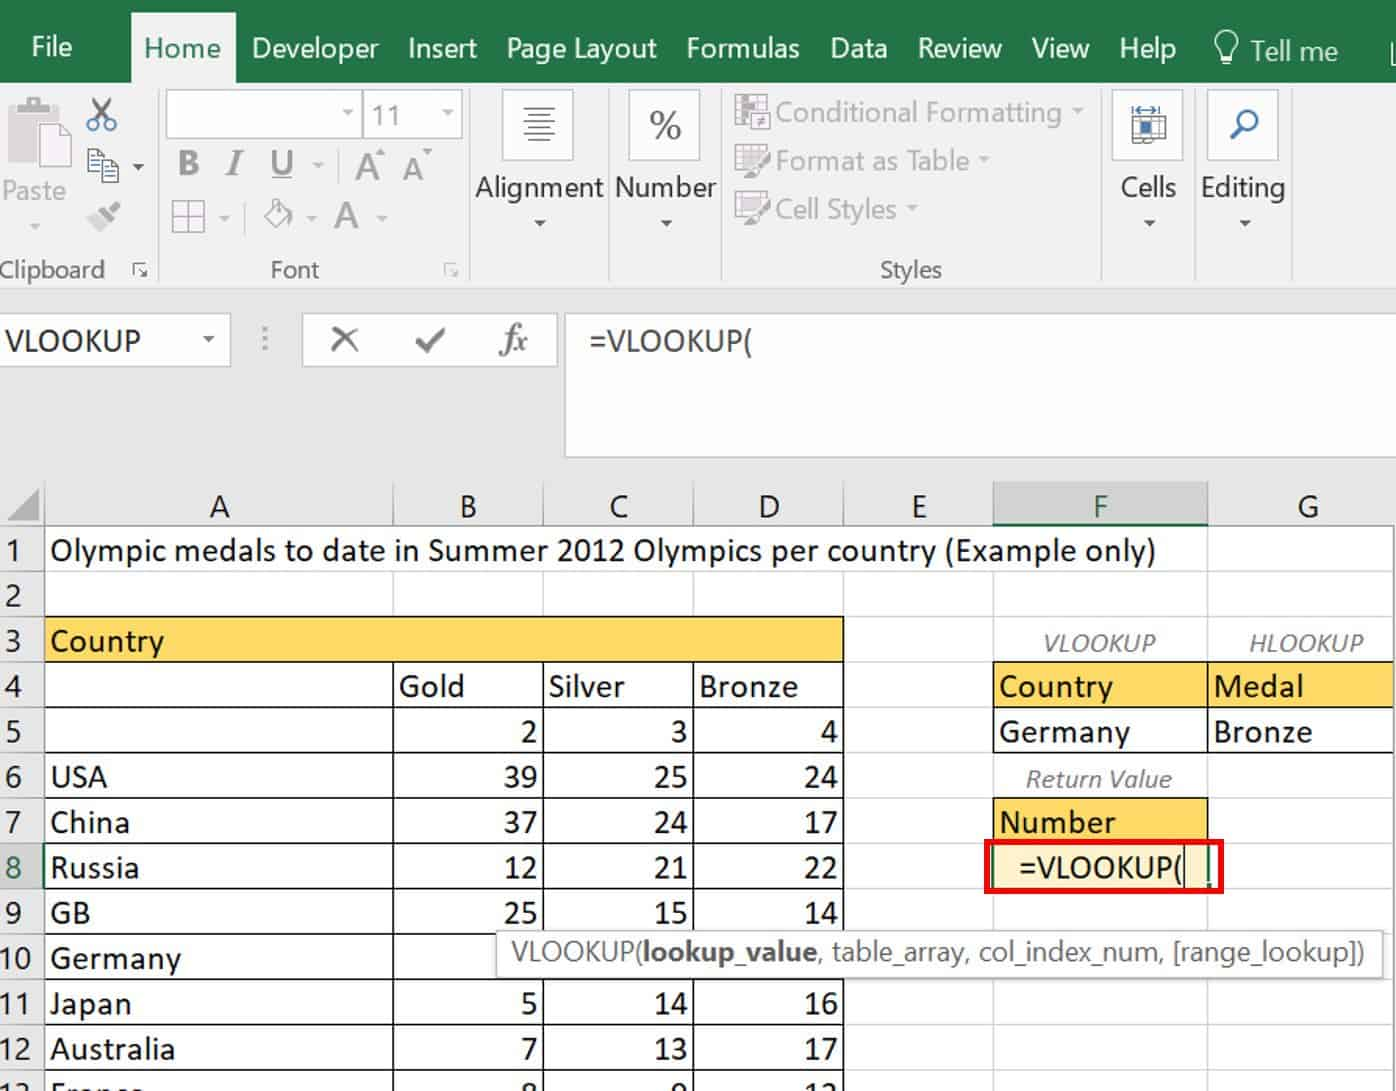 HLOOKUP arguments example